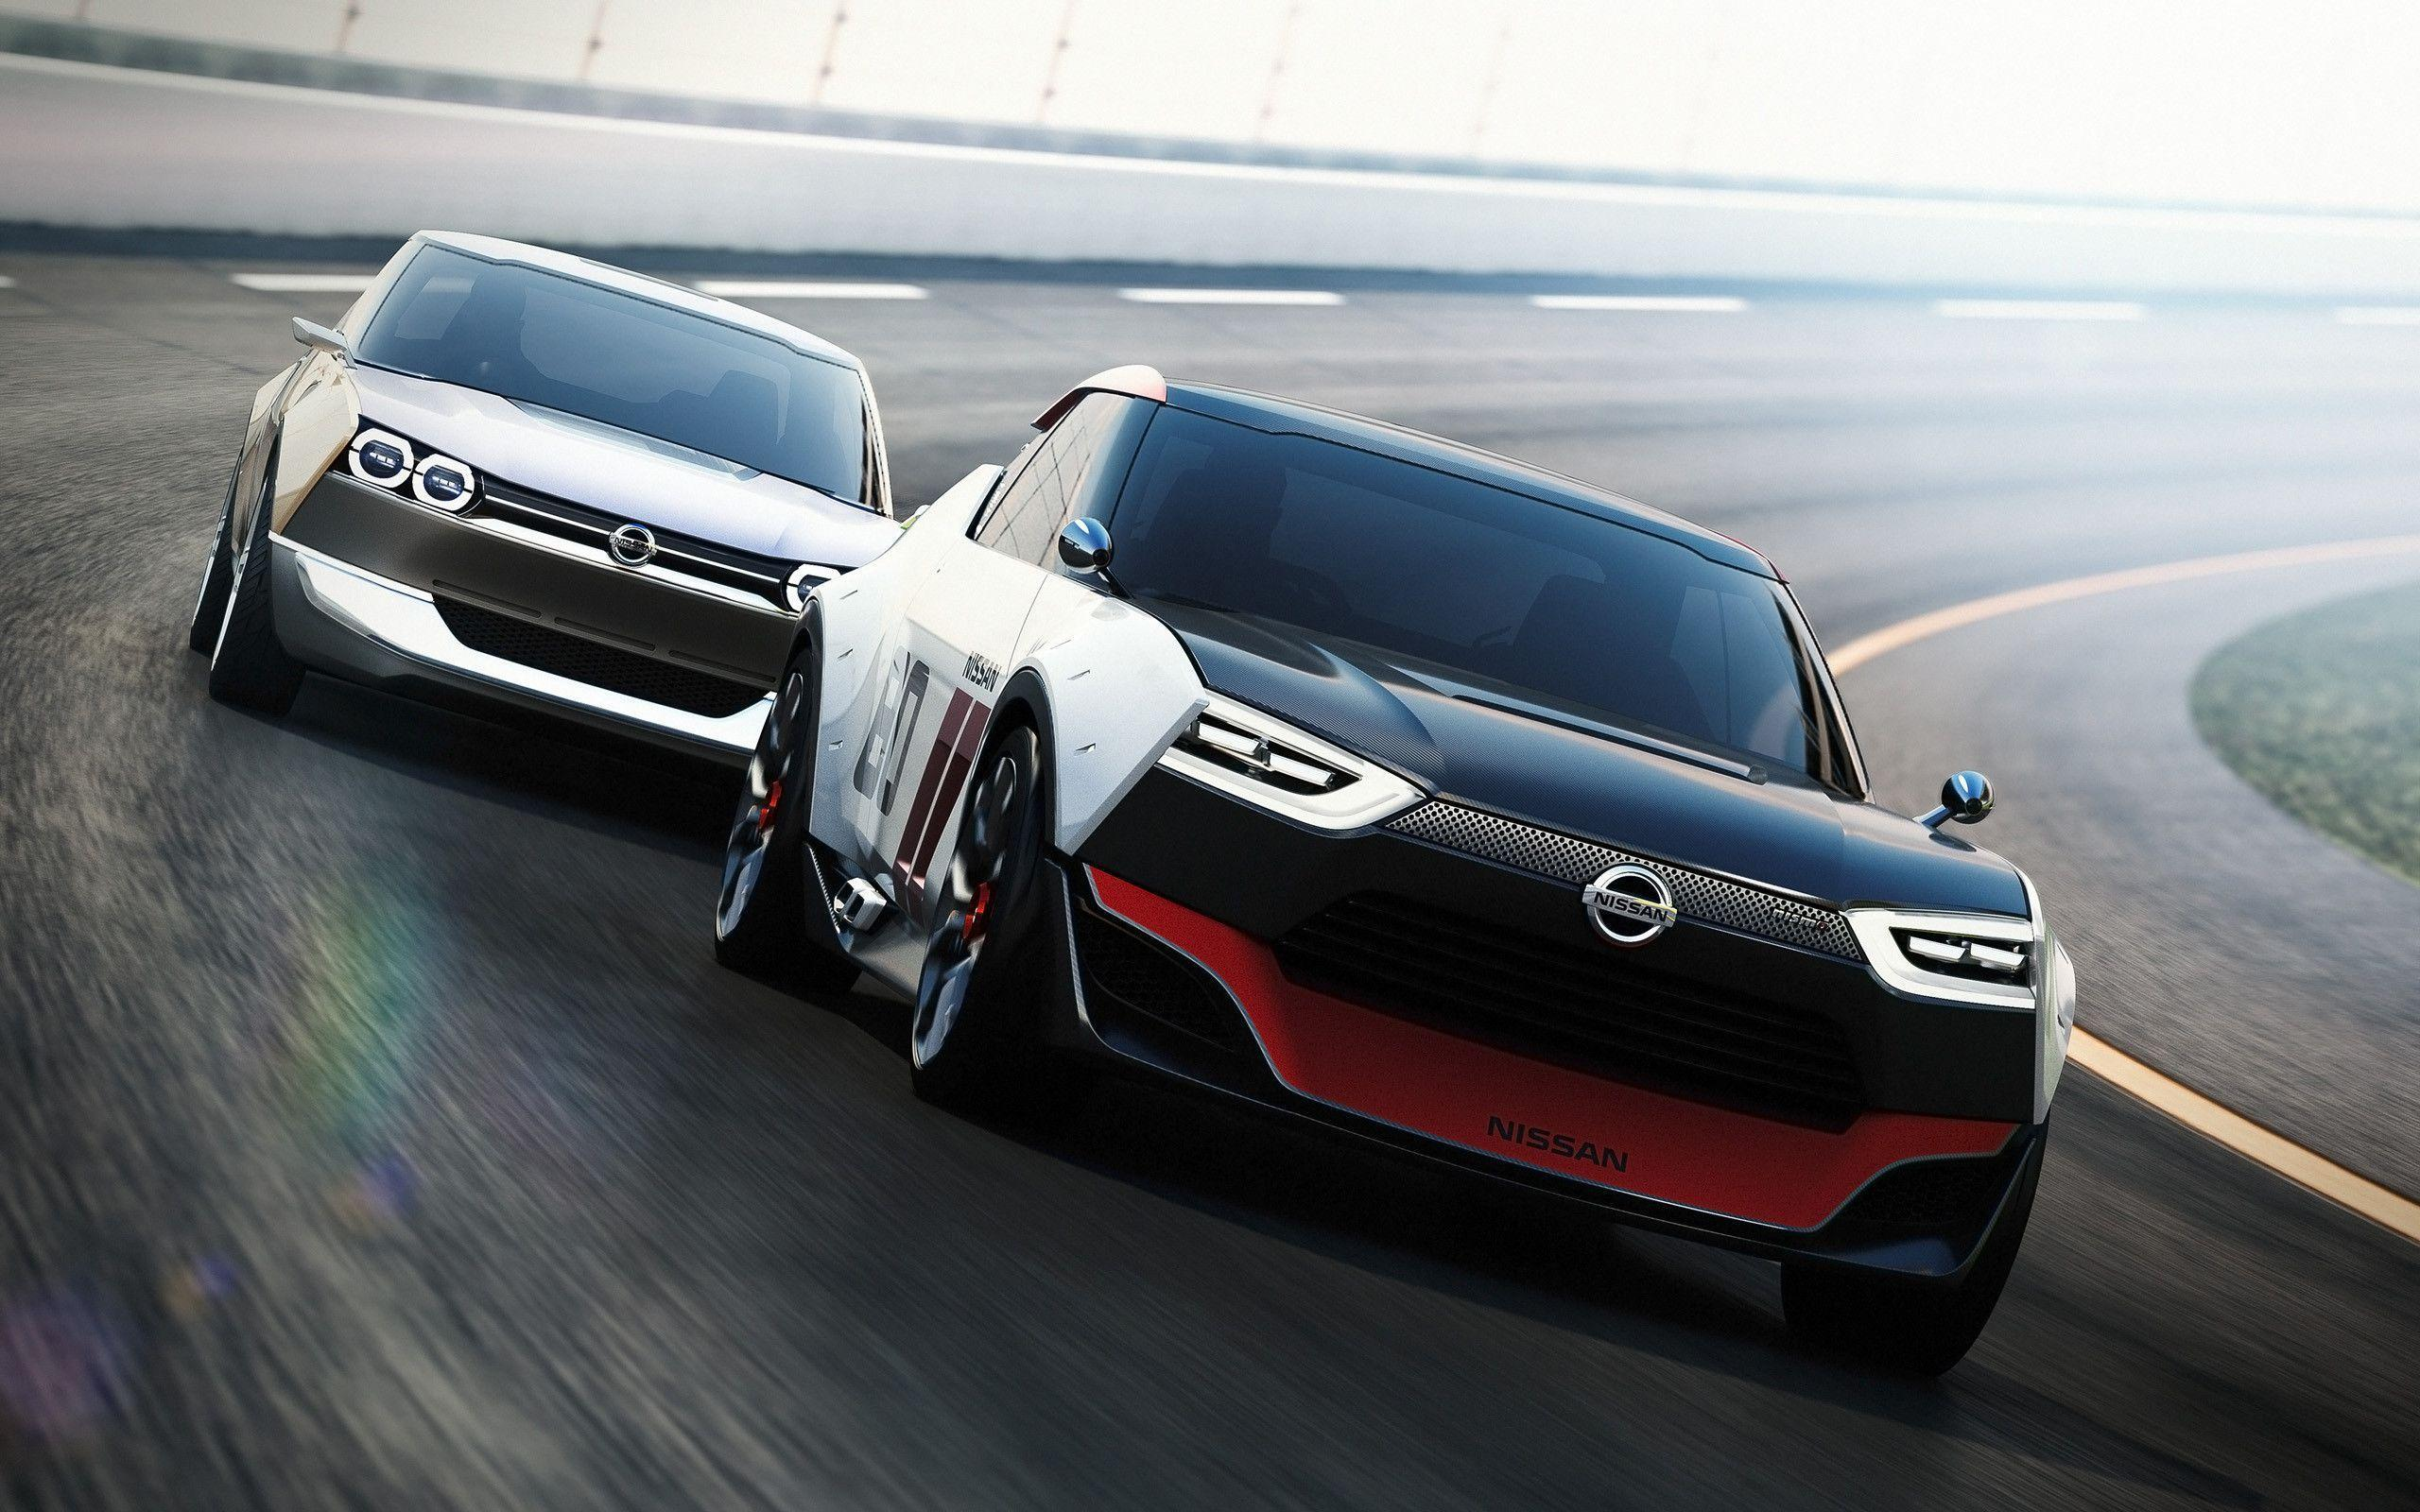 2013 Nissan IDx NISMO Wallpapers